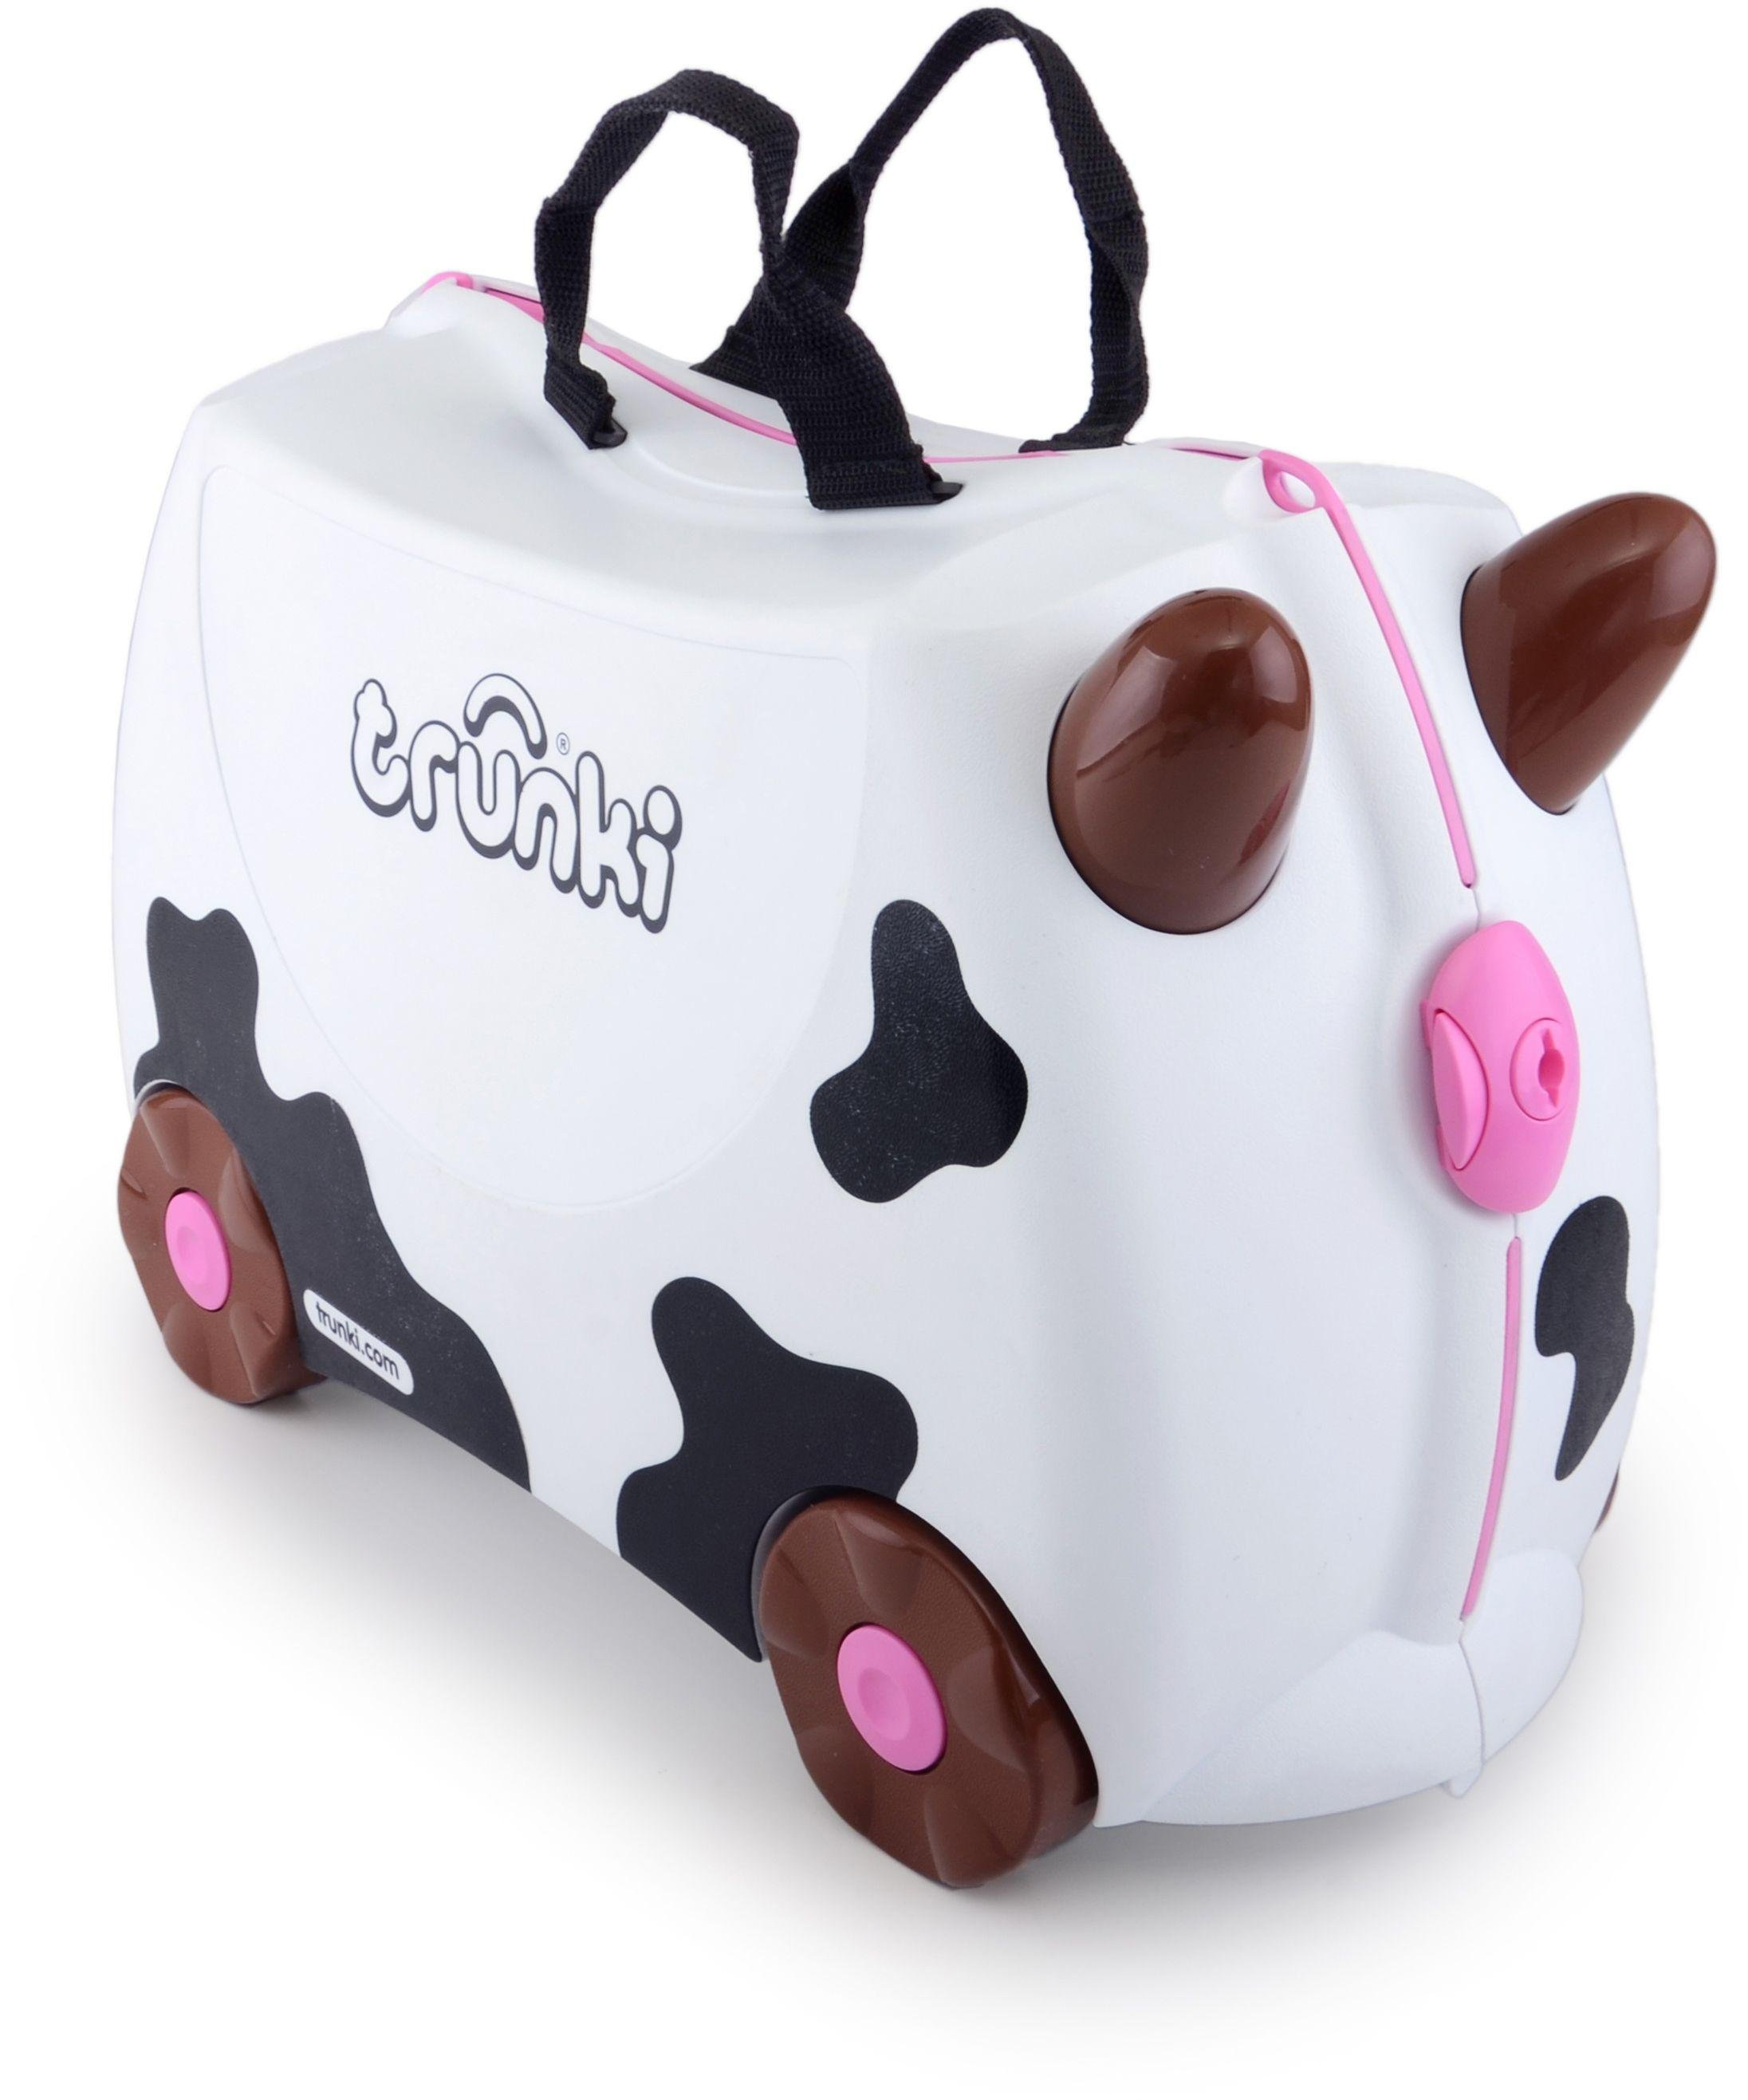 Trunki - Frieda the Cow Ride-On Suitcase - Black/White lowest price